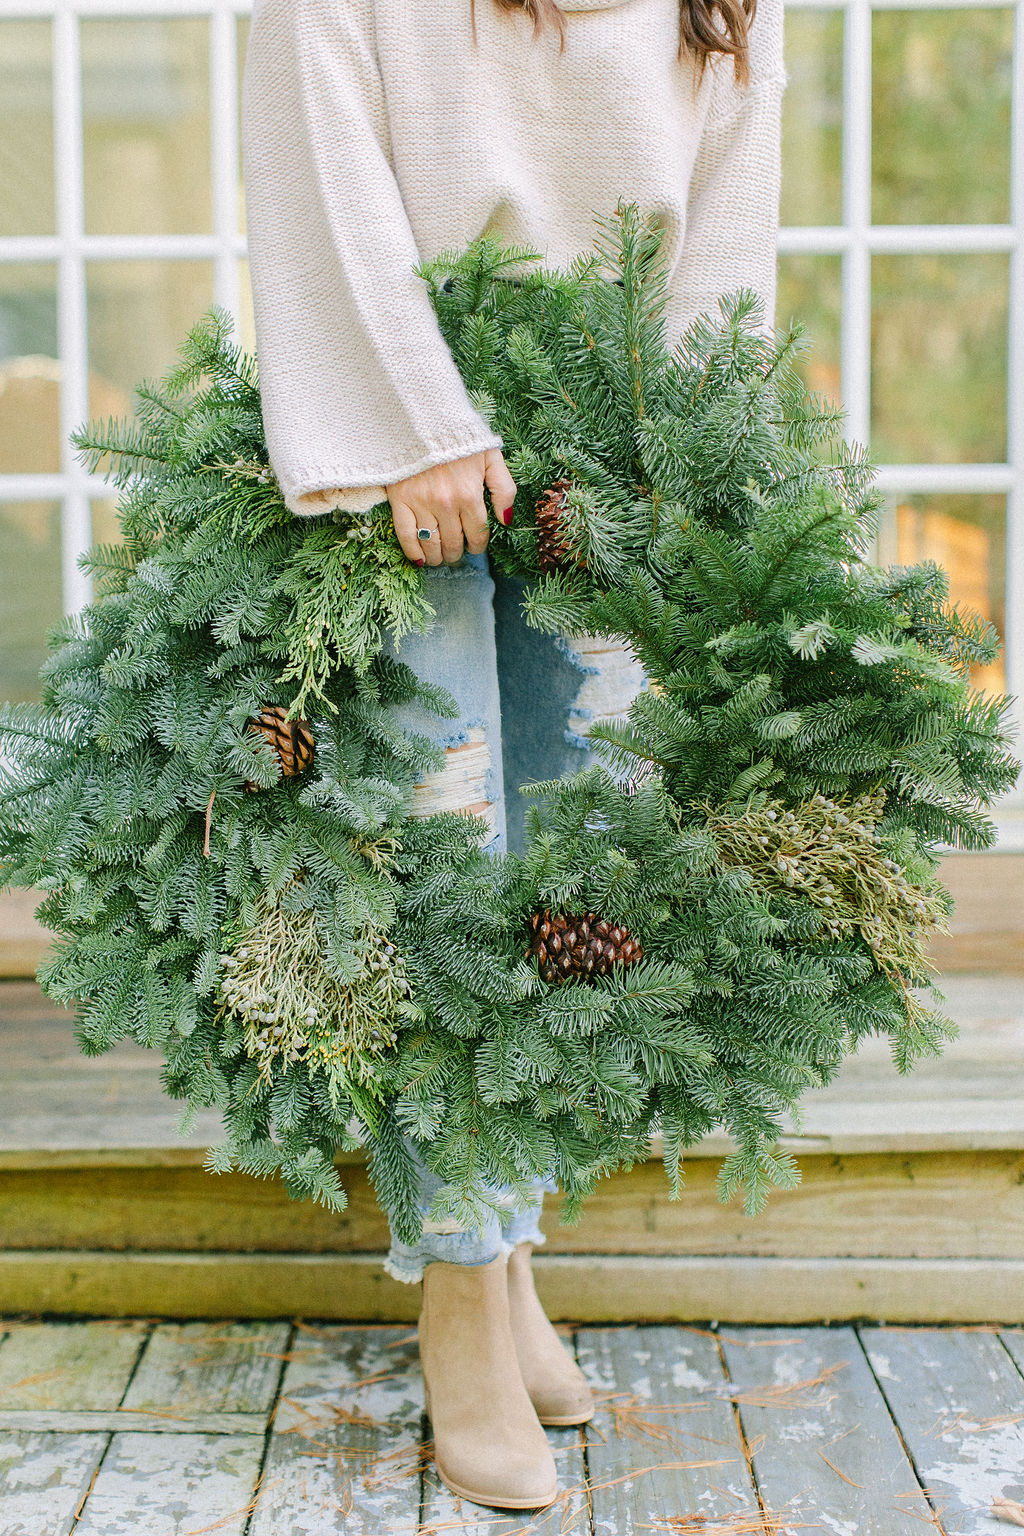 Do you love using live greens in your hoiday decor? Here are 10 hacks to keep your holiday greens alive longer to enjoy them all season long.